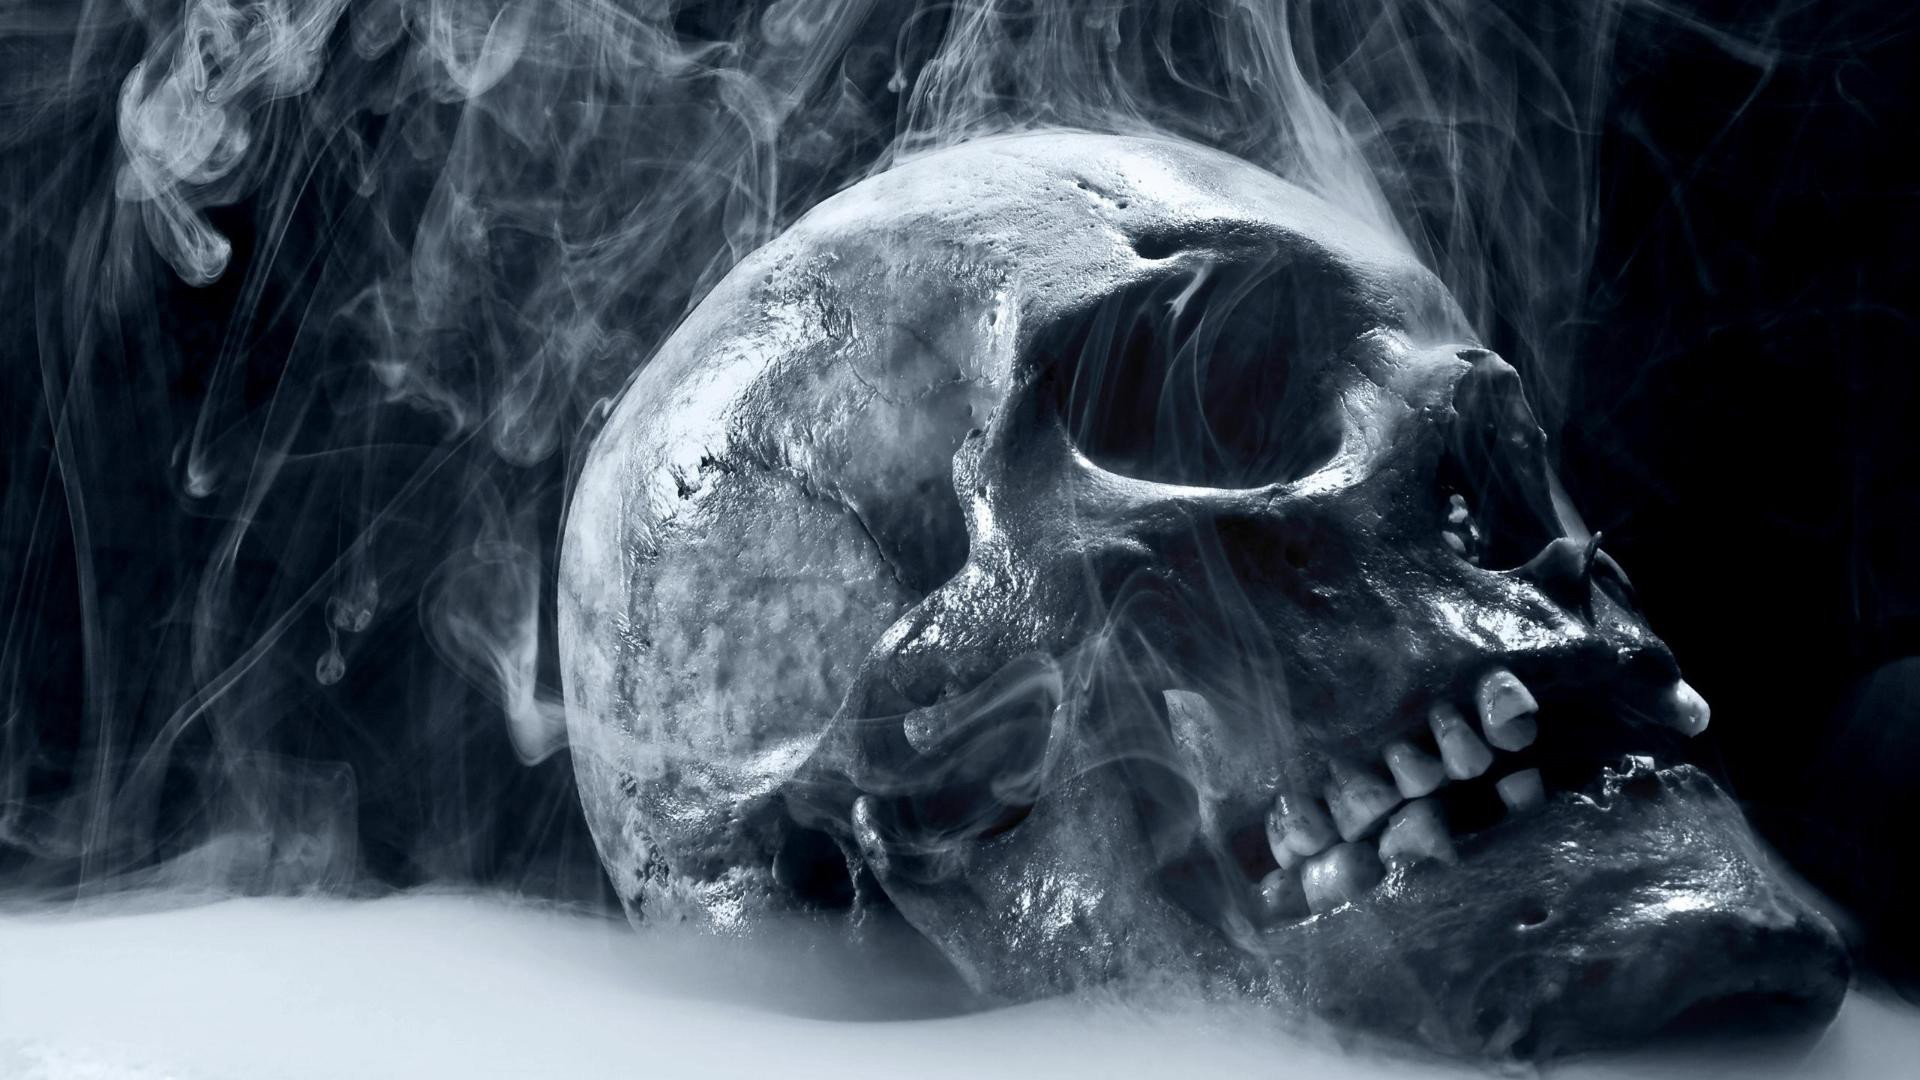 ... Smoke Wallpaper; Smoke Wallpaper